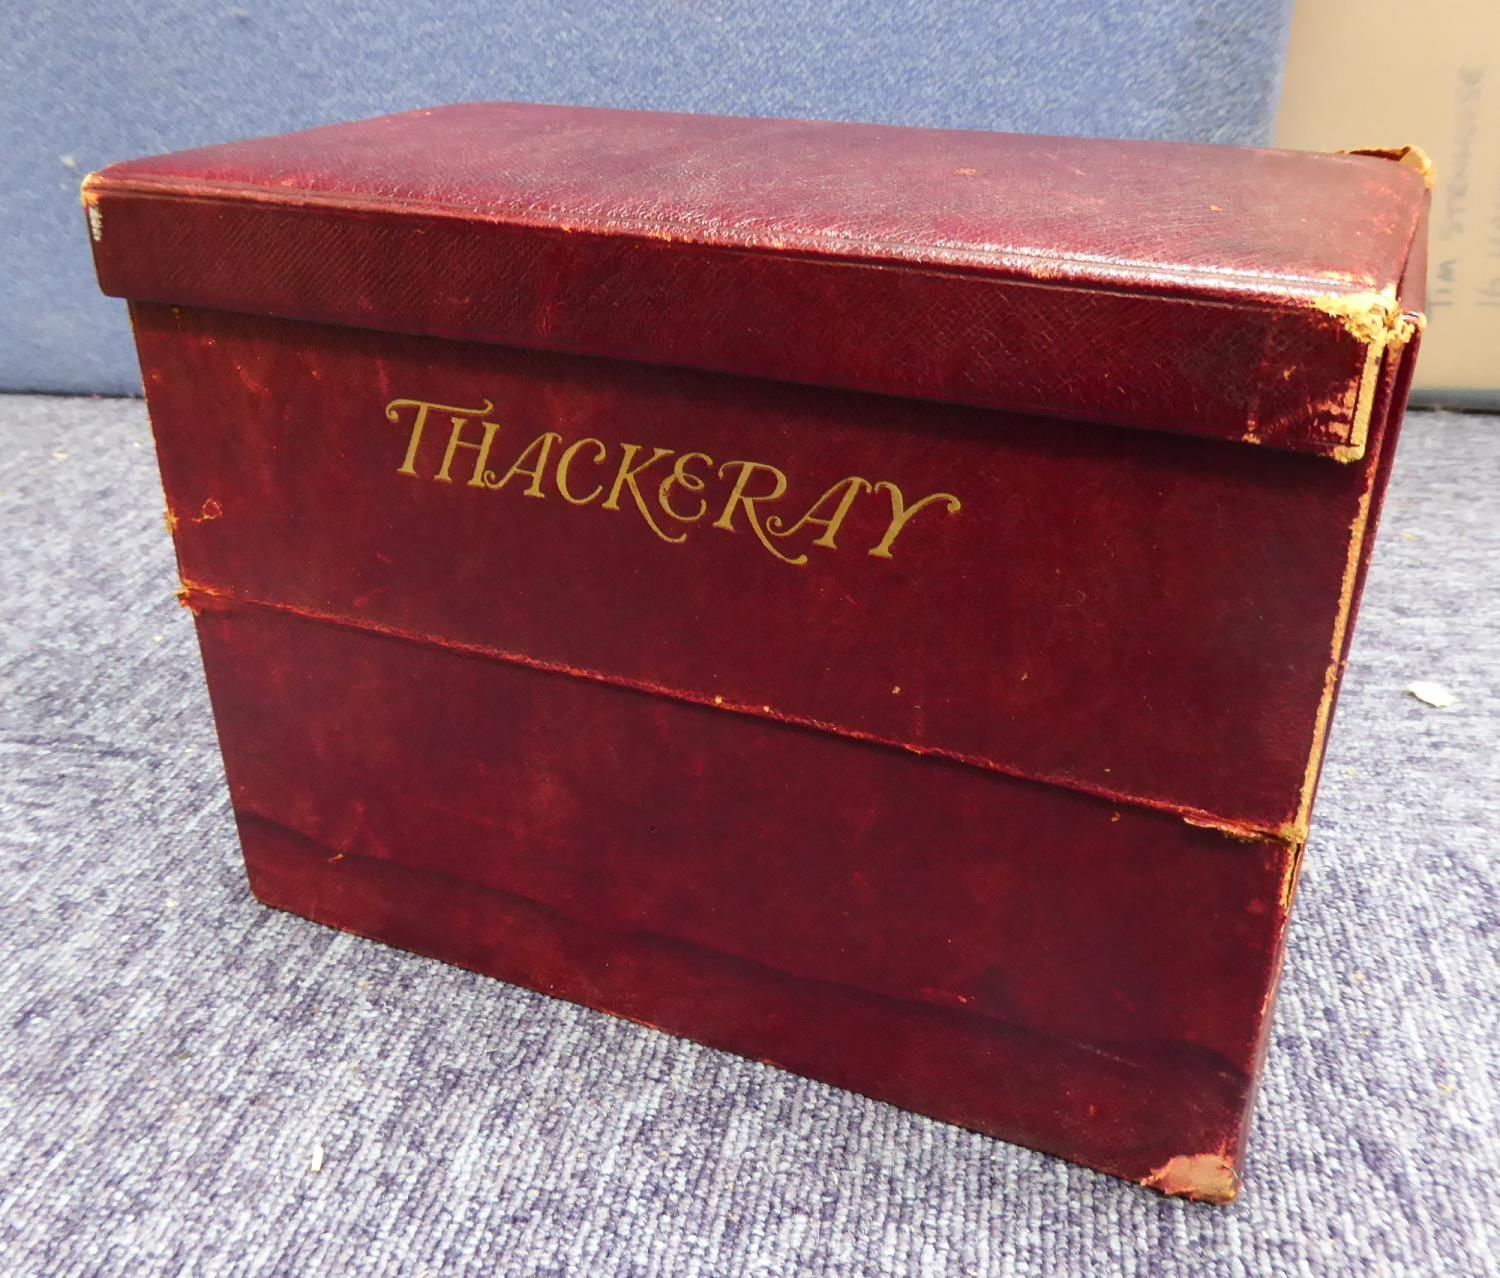 Lot 128 - THACKERAY - THE COMPLETE WORKS NEW CENTURY EDITION Thomas Nelson 1900 12 of 14 volumes Limp